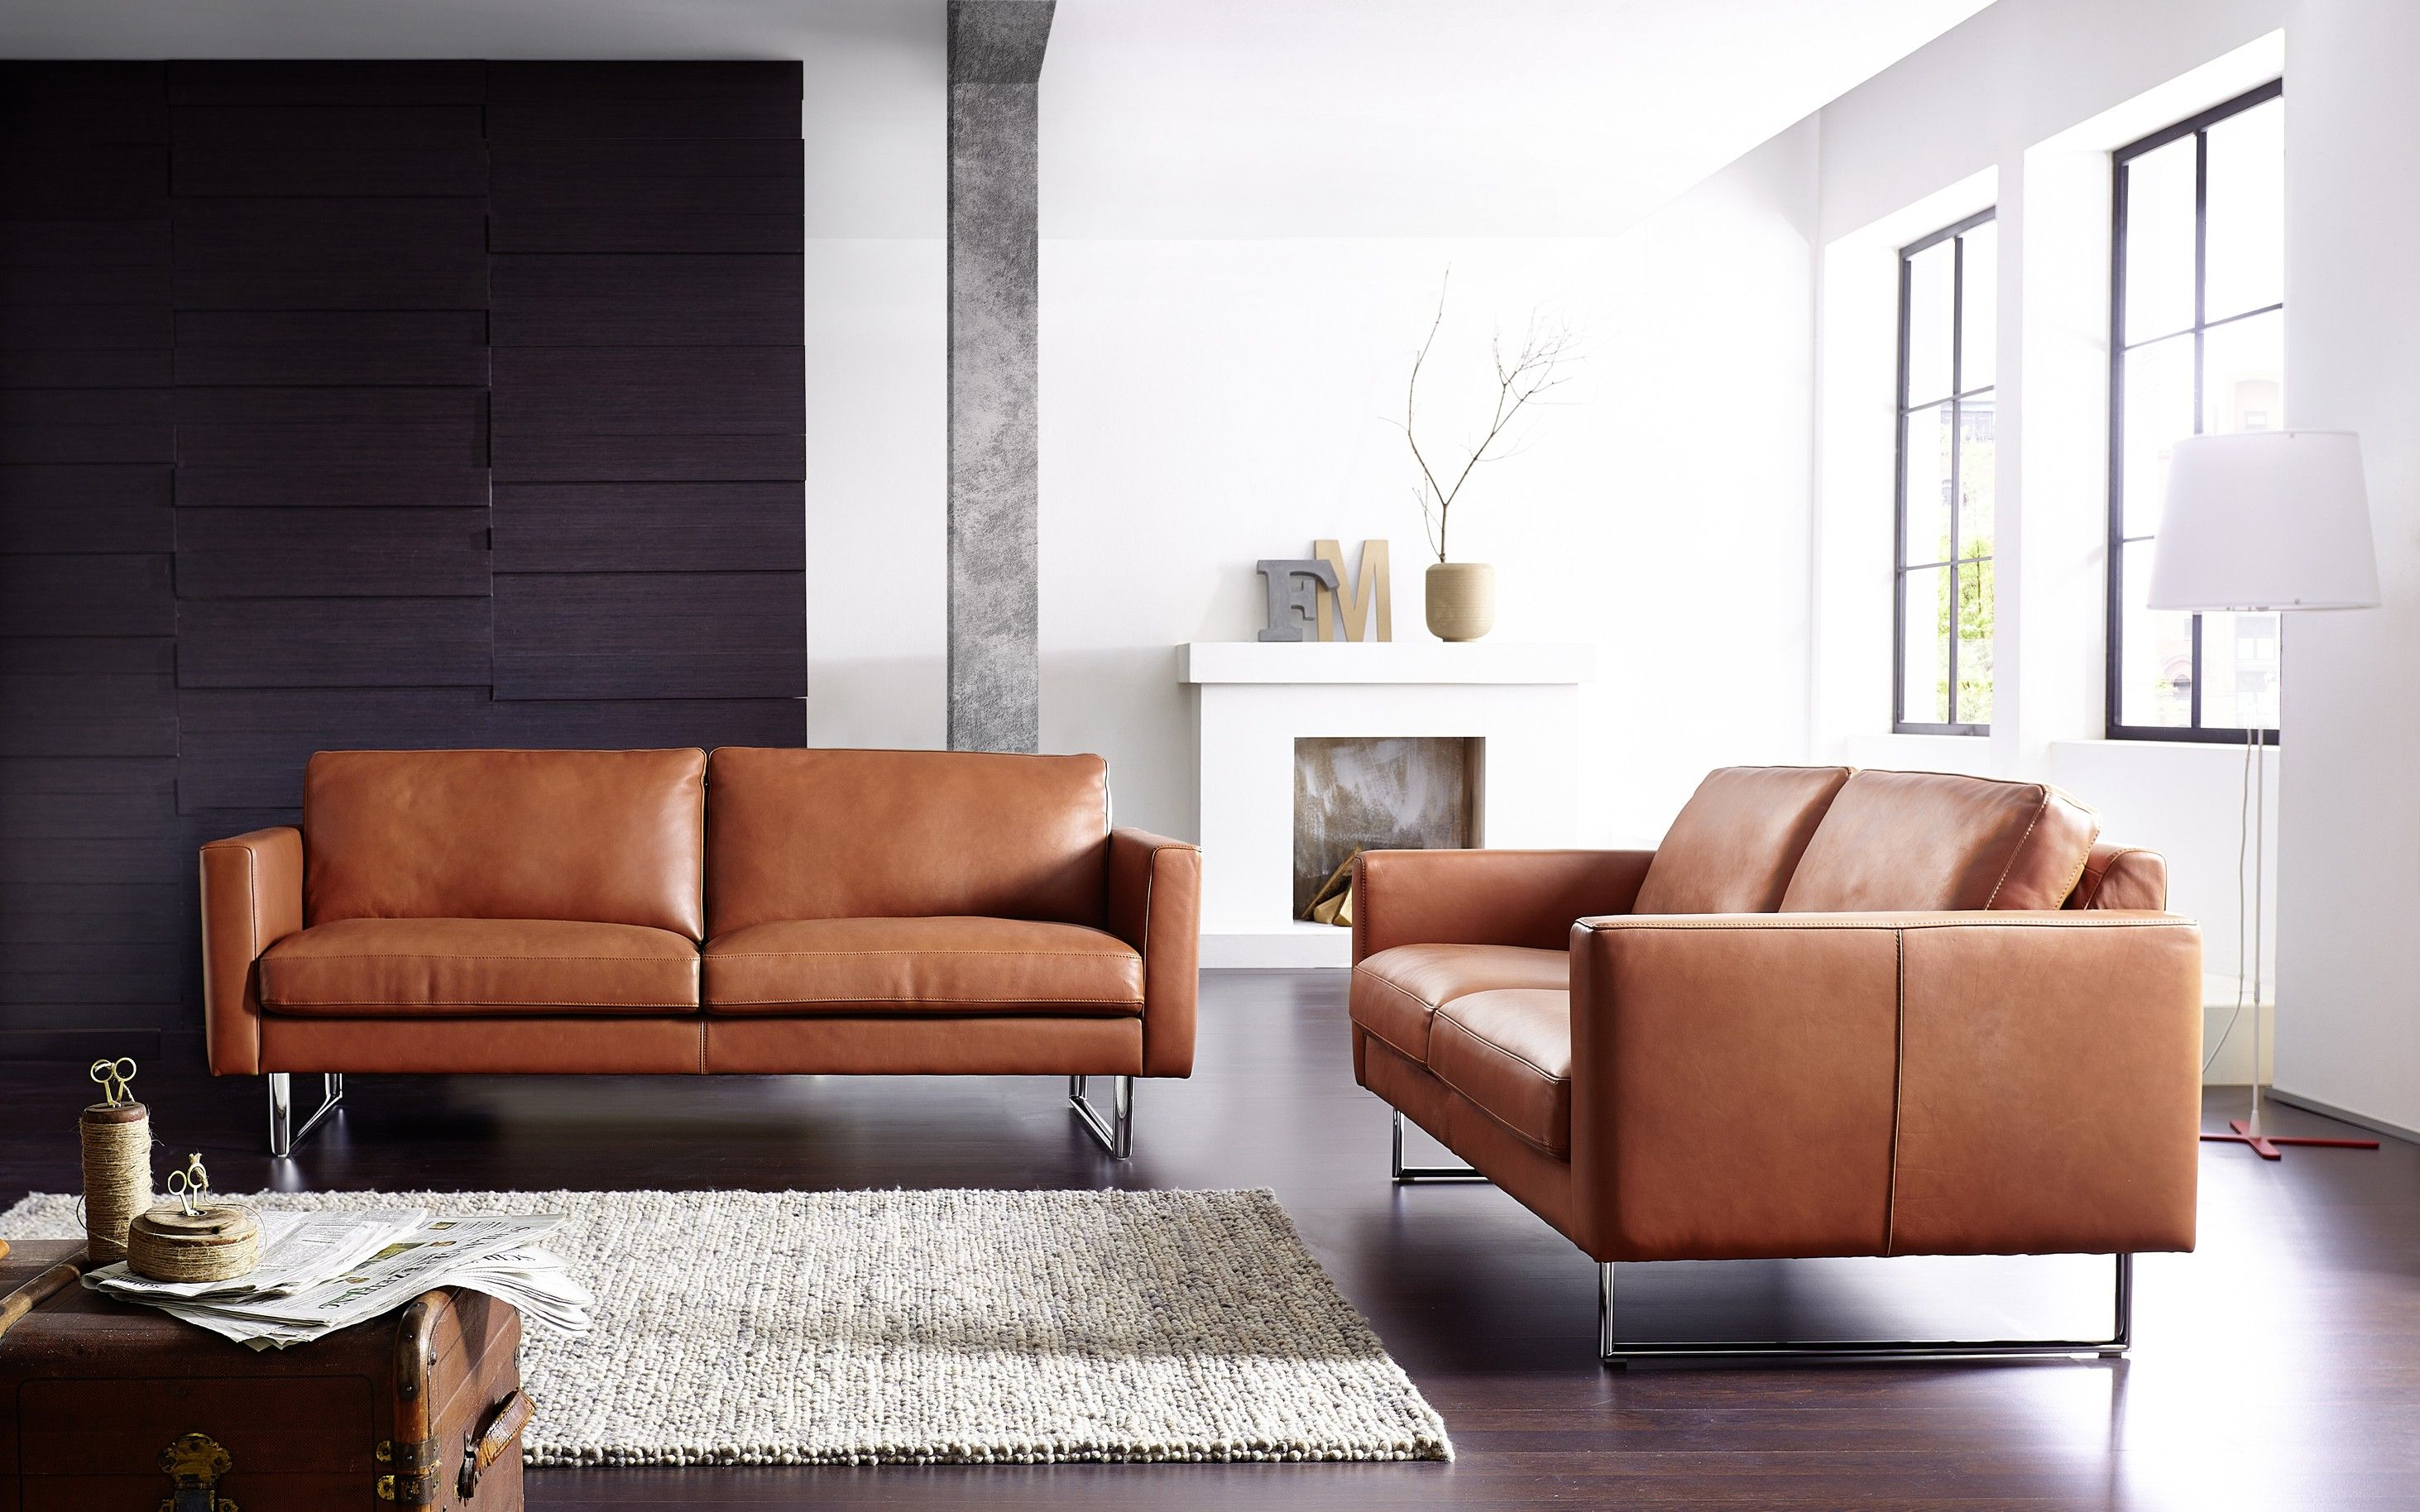 Ledersofa Life-Echte Handarbeit - Made in Germany … | Pinteres…